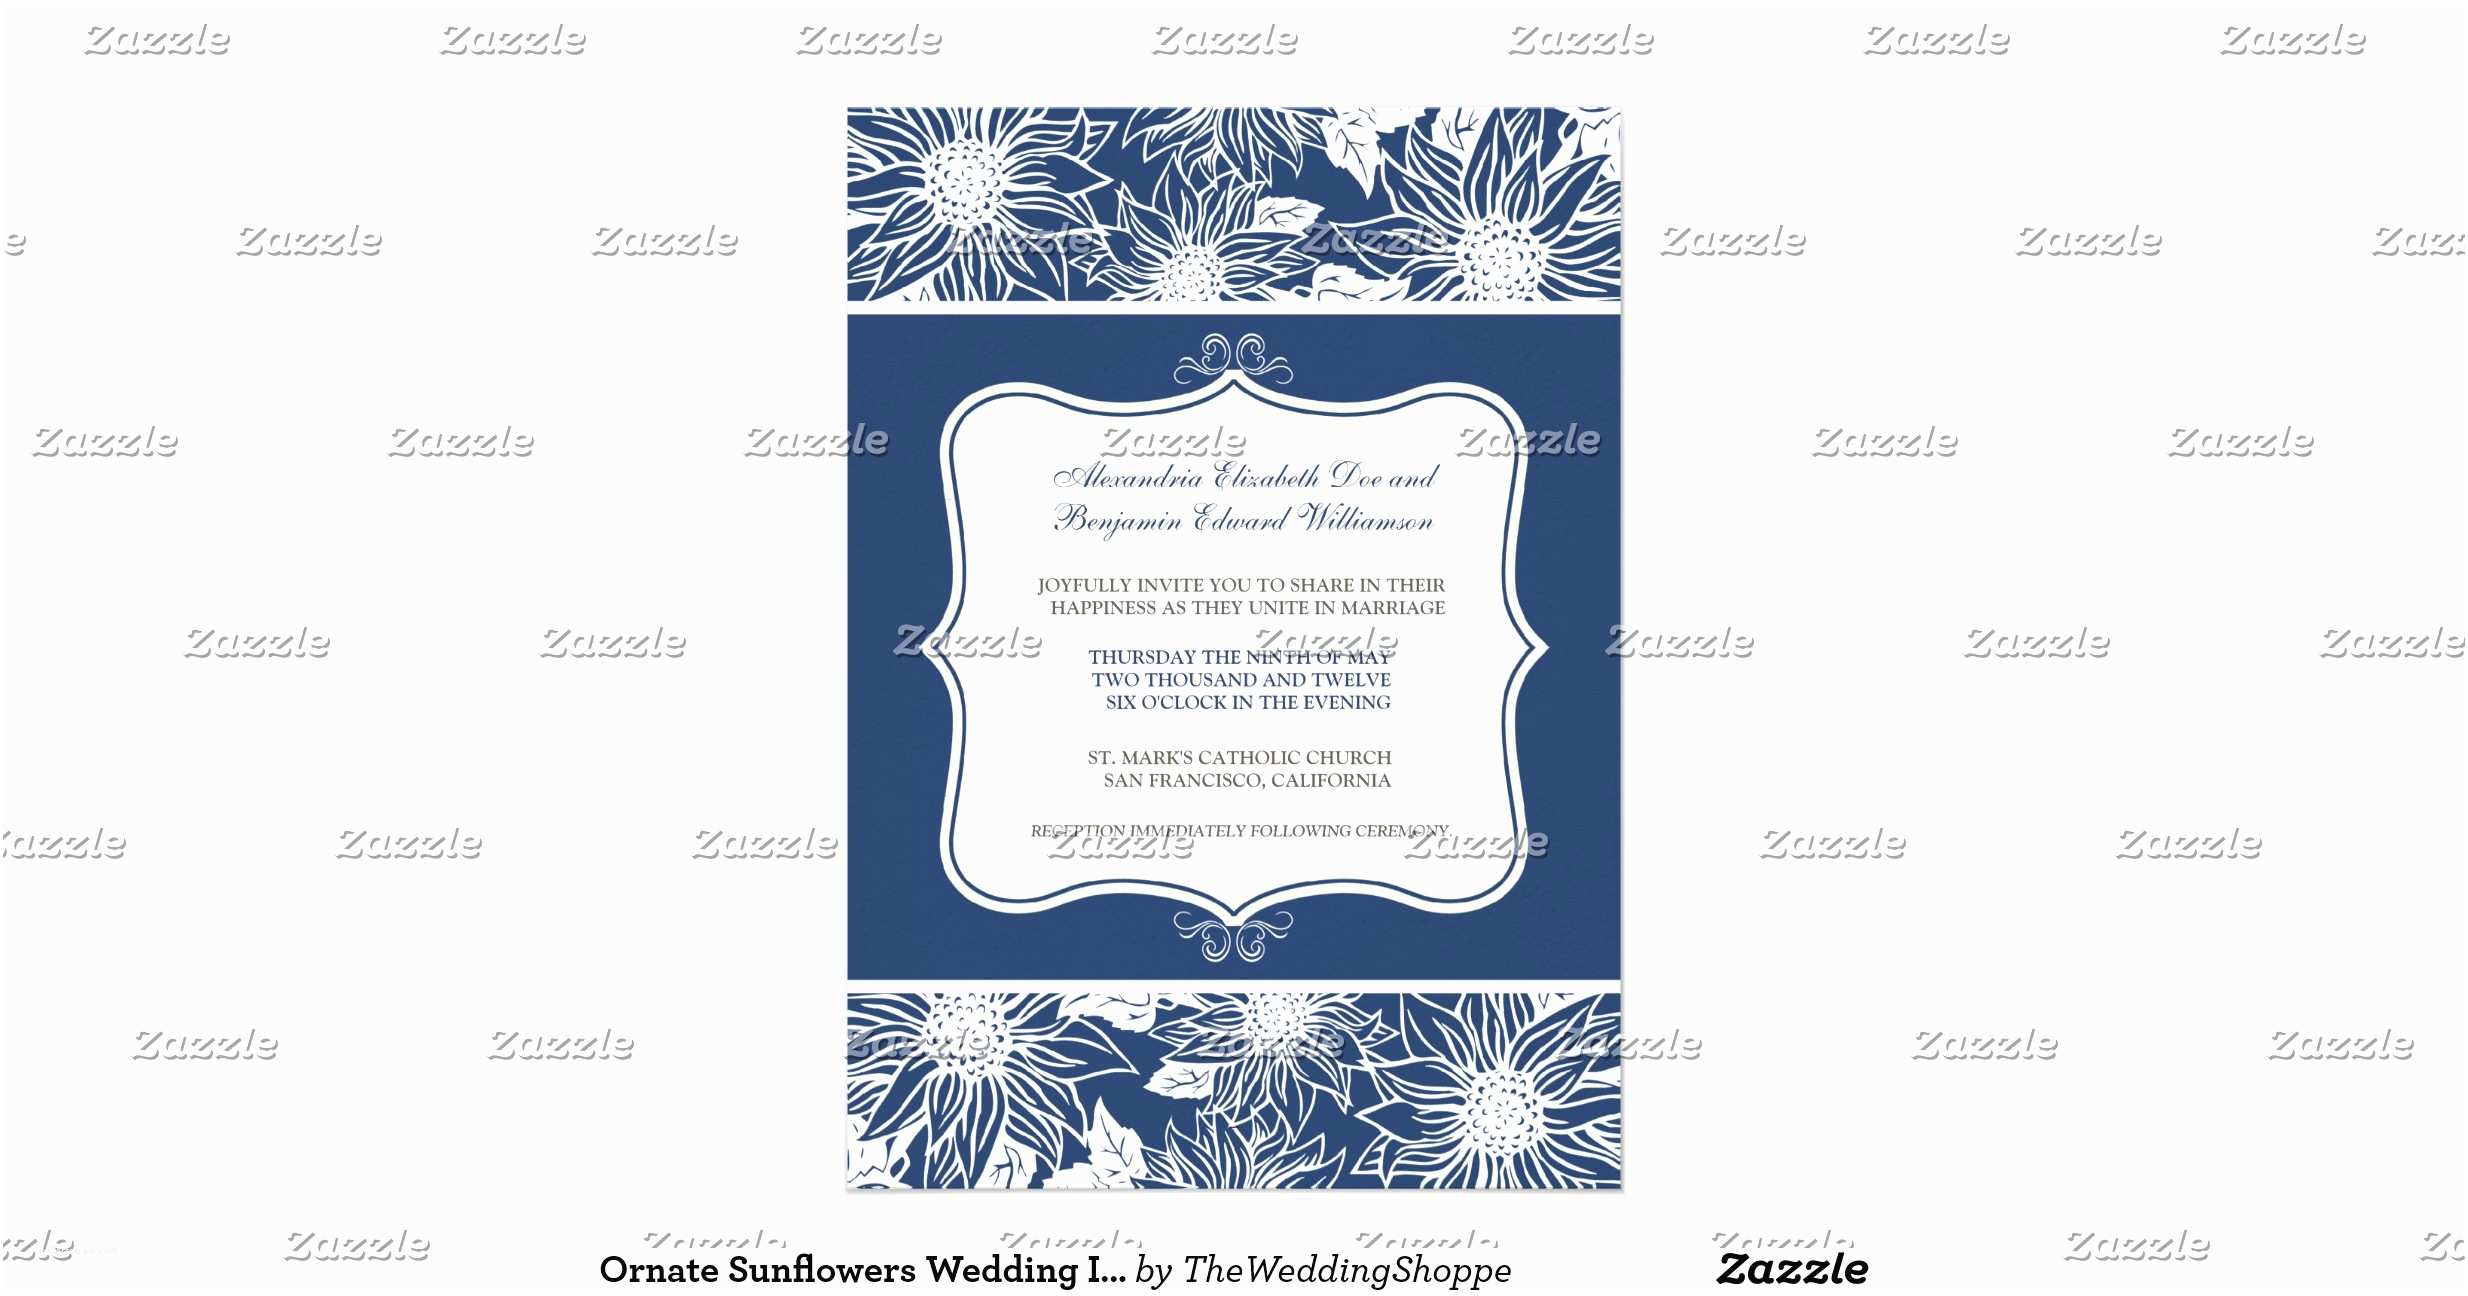 Navy Blue and Sunflower Wedding Invitations ornate Sunflowers Wedding Invitation Navy Blue